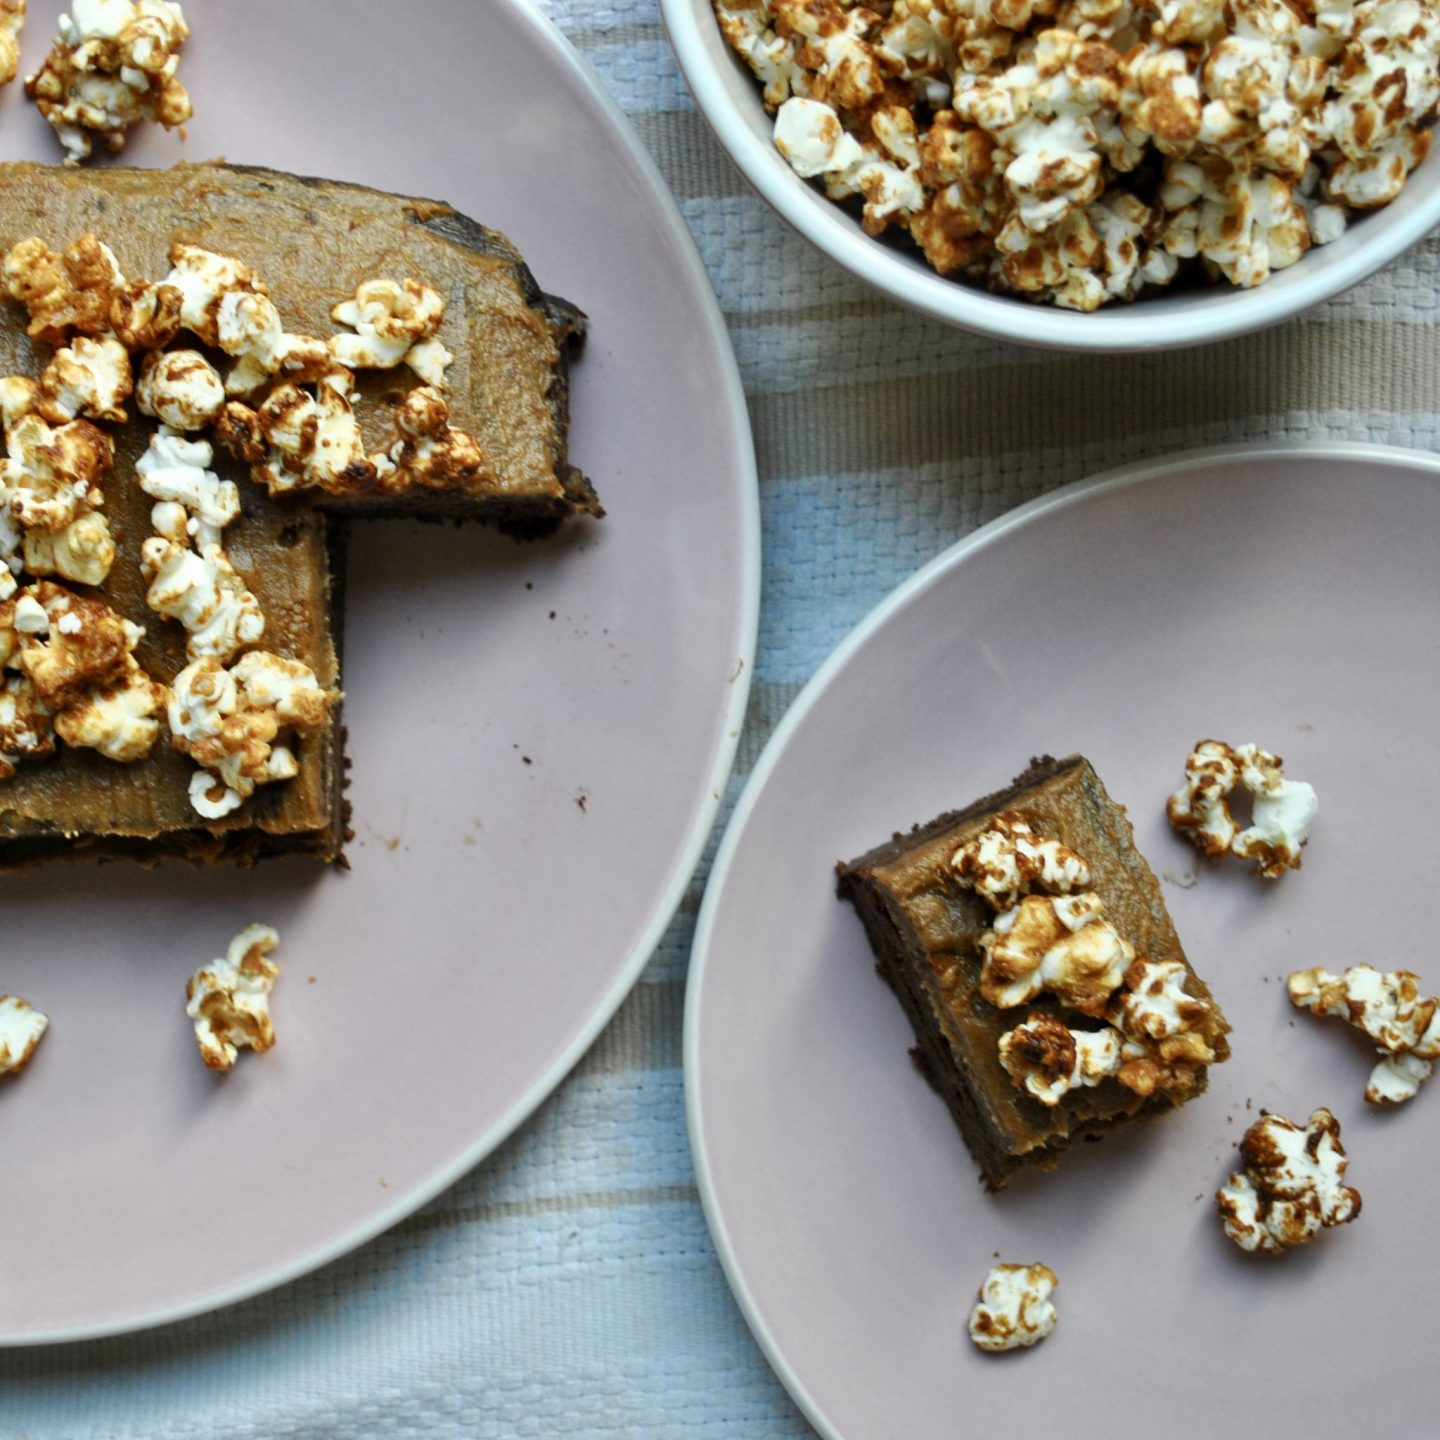 Gooey Chocolate Cake with Date Maca Caramel Frosting and Salted Caramel Popcorn